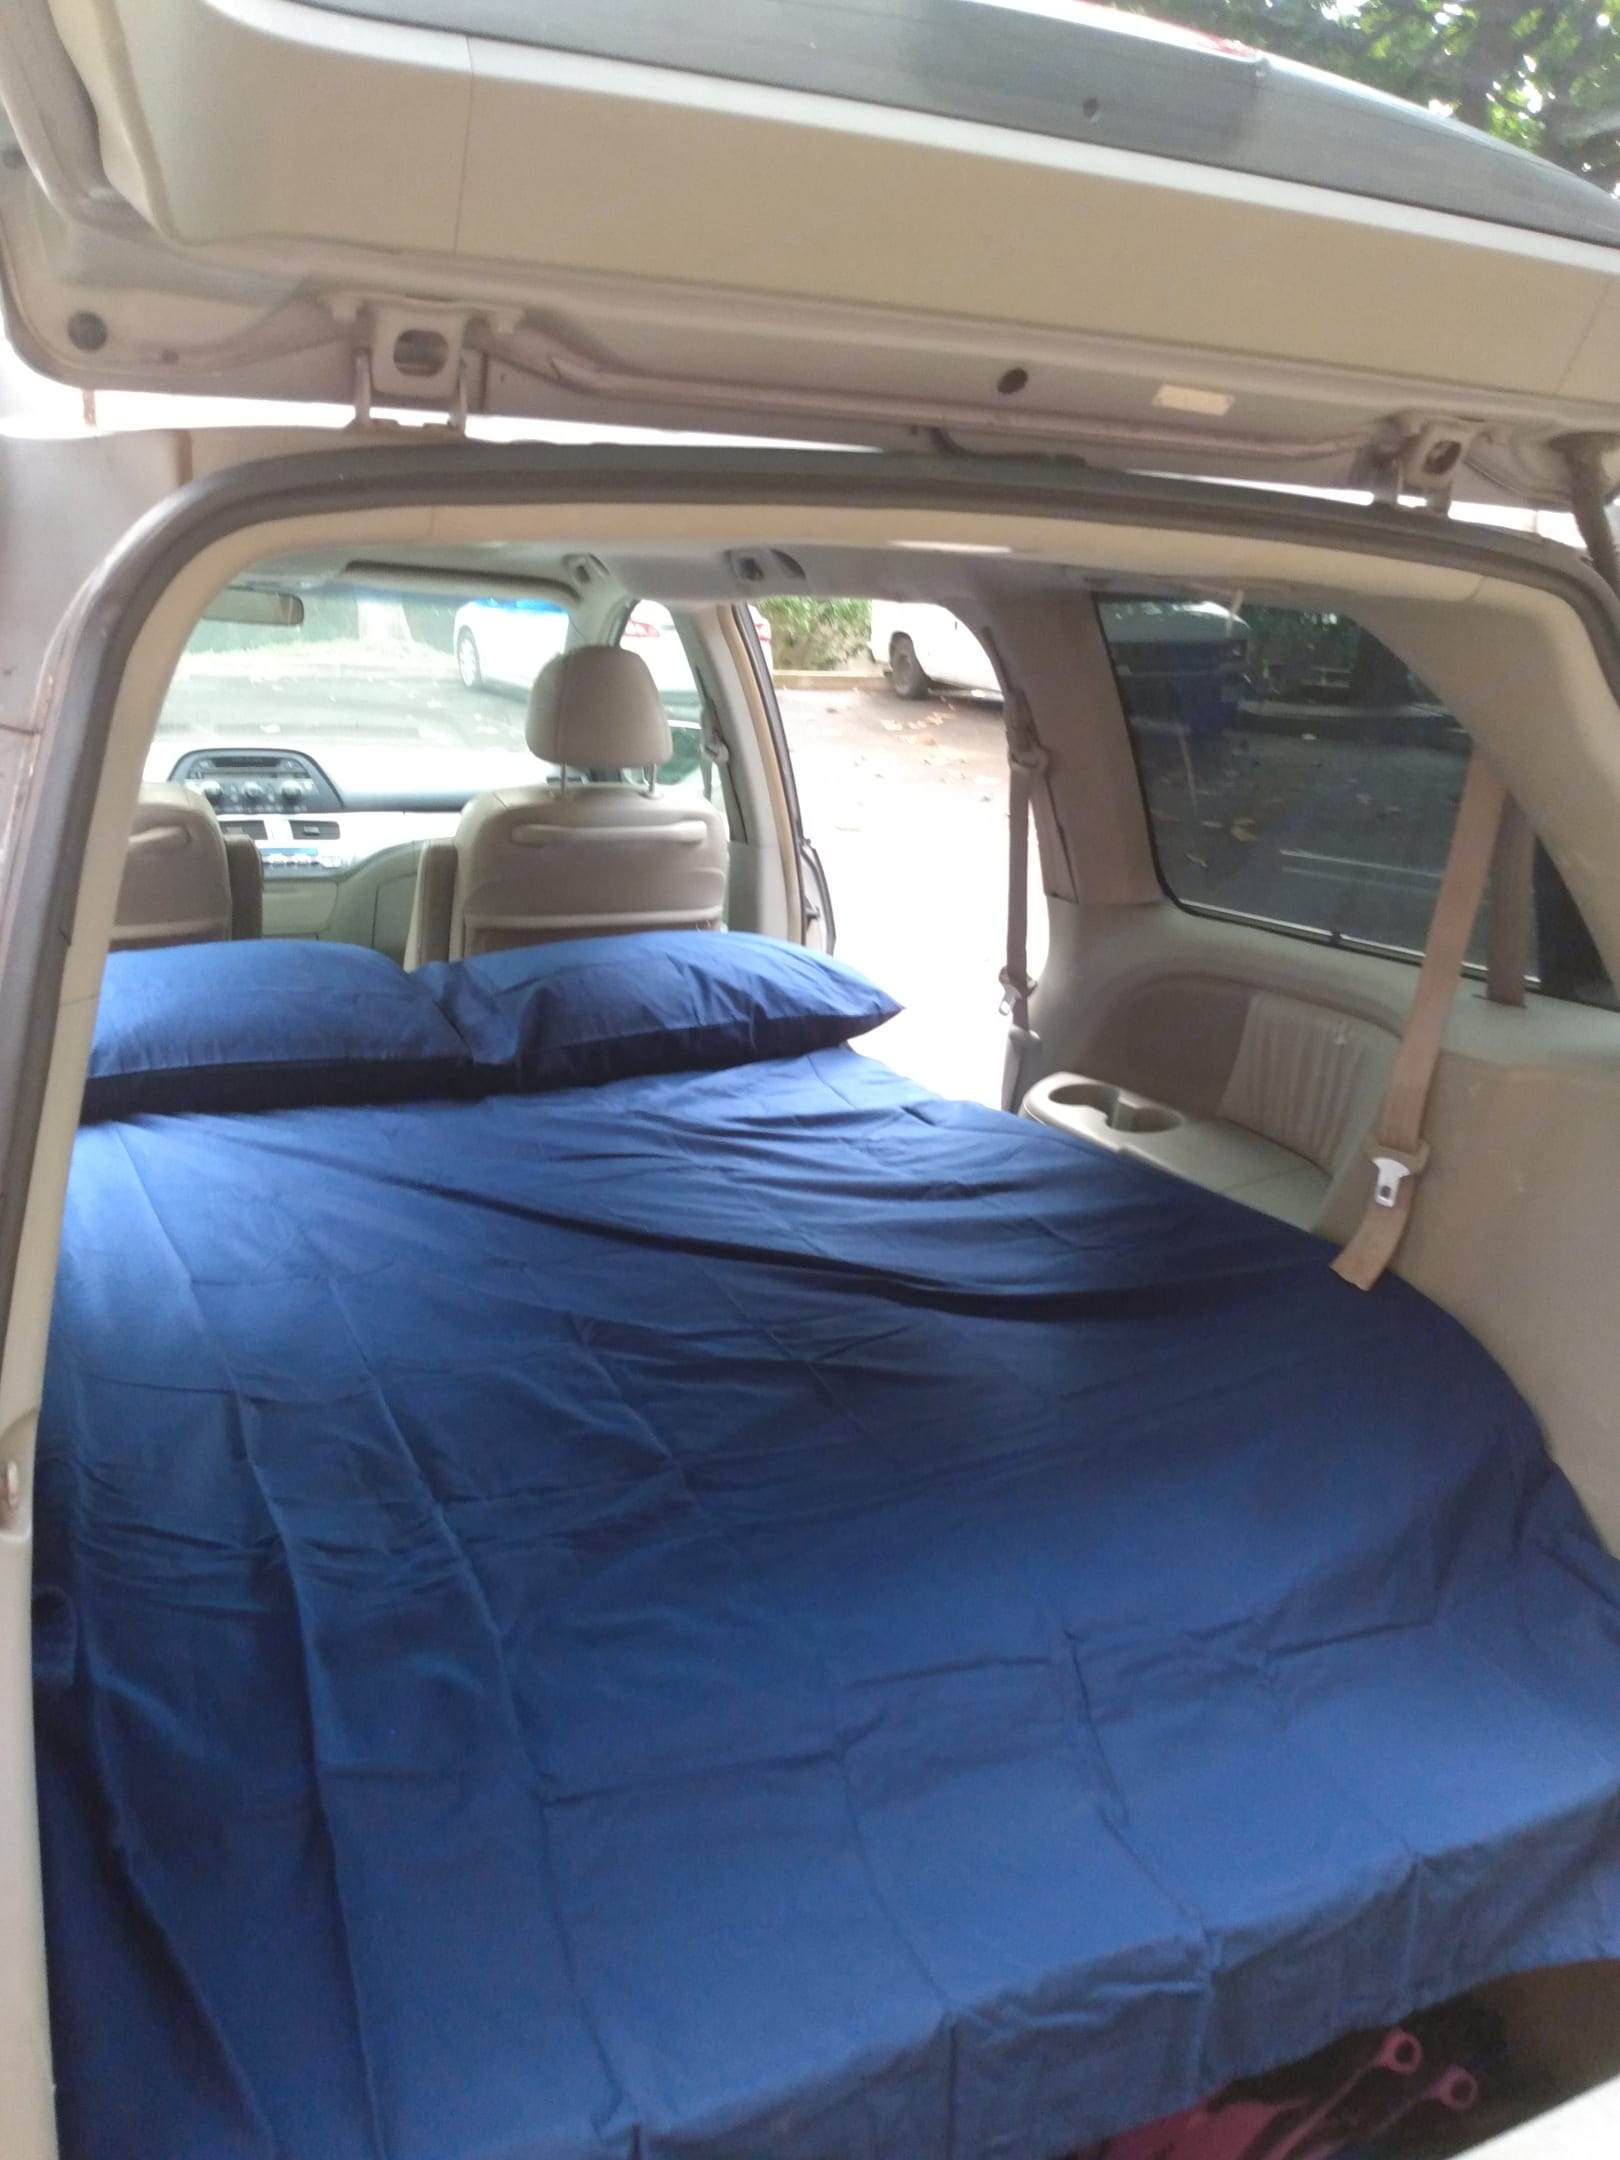 New full size 3-in memory foam mattress two pillows two towels and a sarong. Clean and comfy.. Honda Odyssey 2005